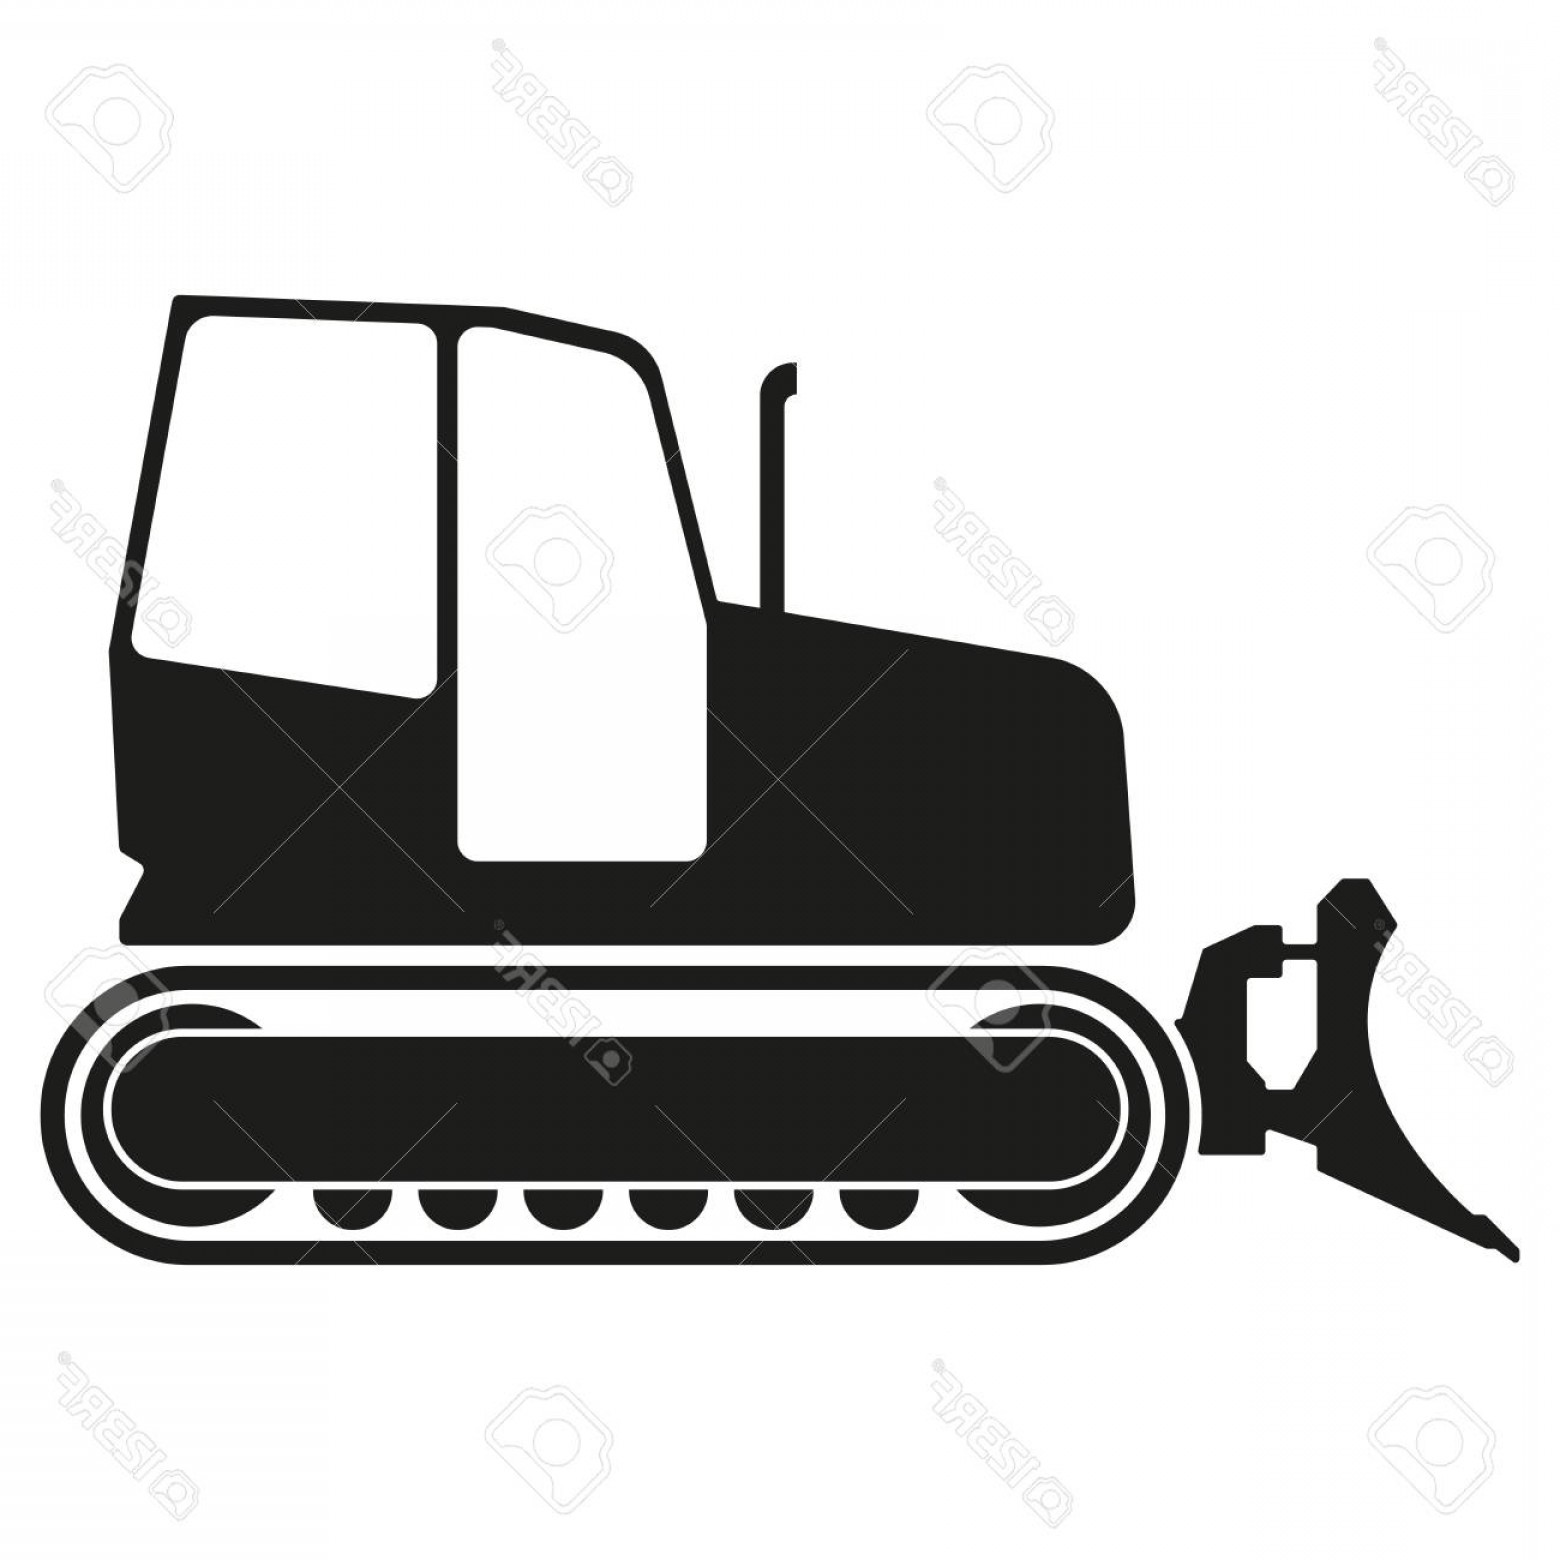 Tractor Silhouette Vector Art: Photostock Vector Tractor Or Bulldozer Icon Isolated On White Background Tractor Grader Silhouette Vector Illustration